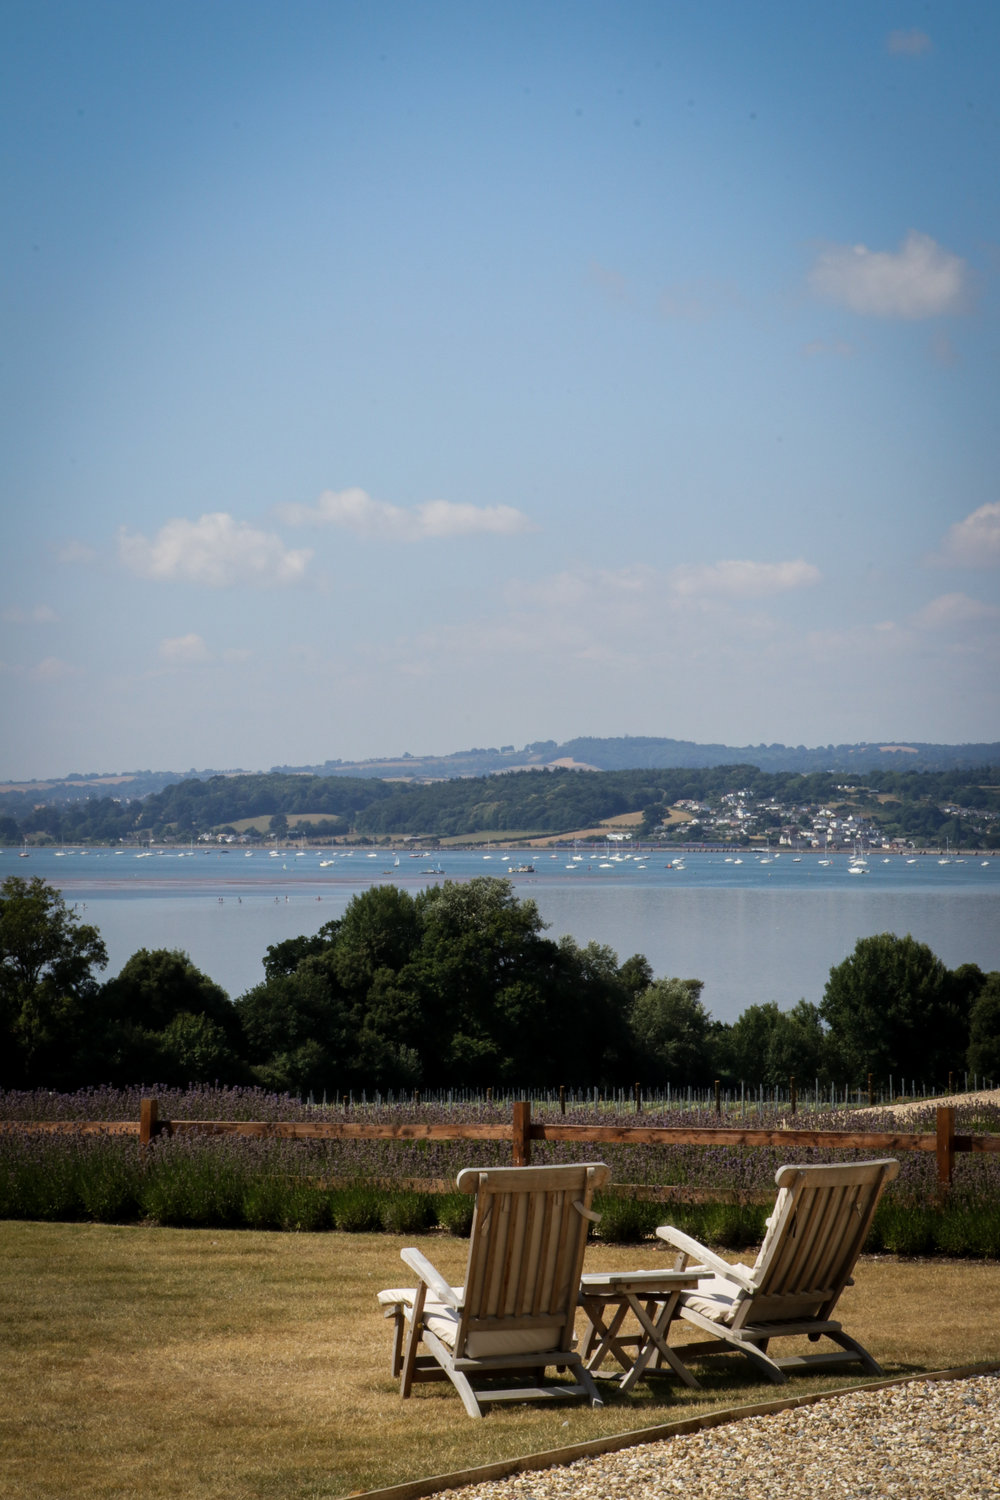 Lympstone Manor - Exmouth.jpg